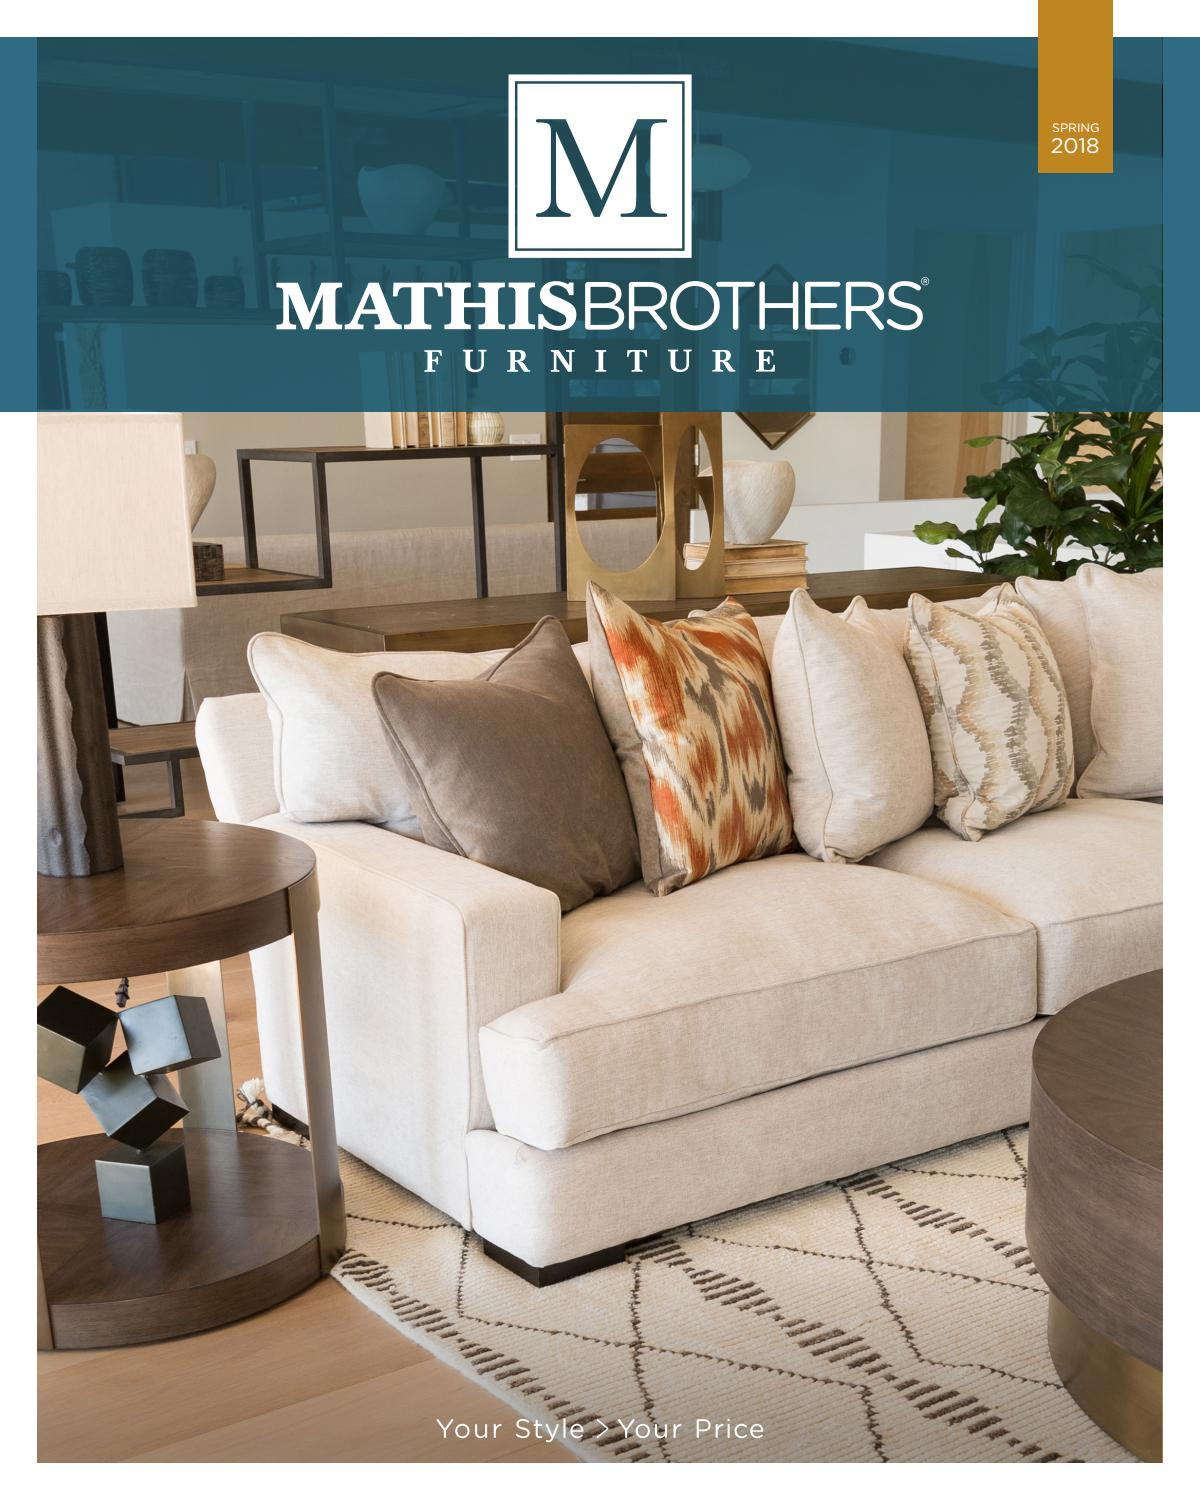 Navy And Gold Dining Room, Mathis Brothers 2018 Spring Lookbook By Mathis Brothers Furniture Issuu